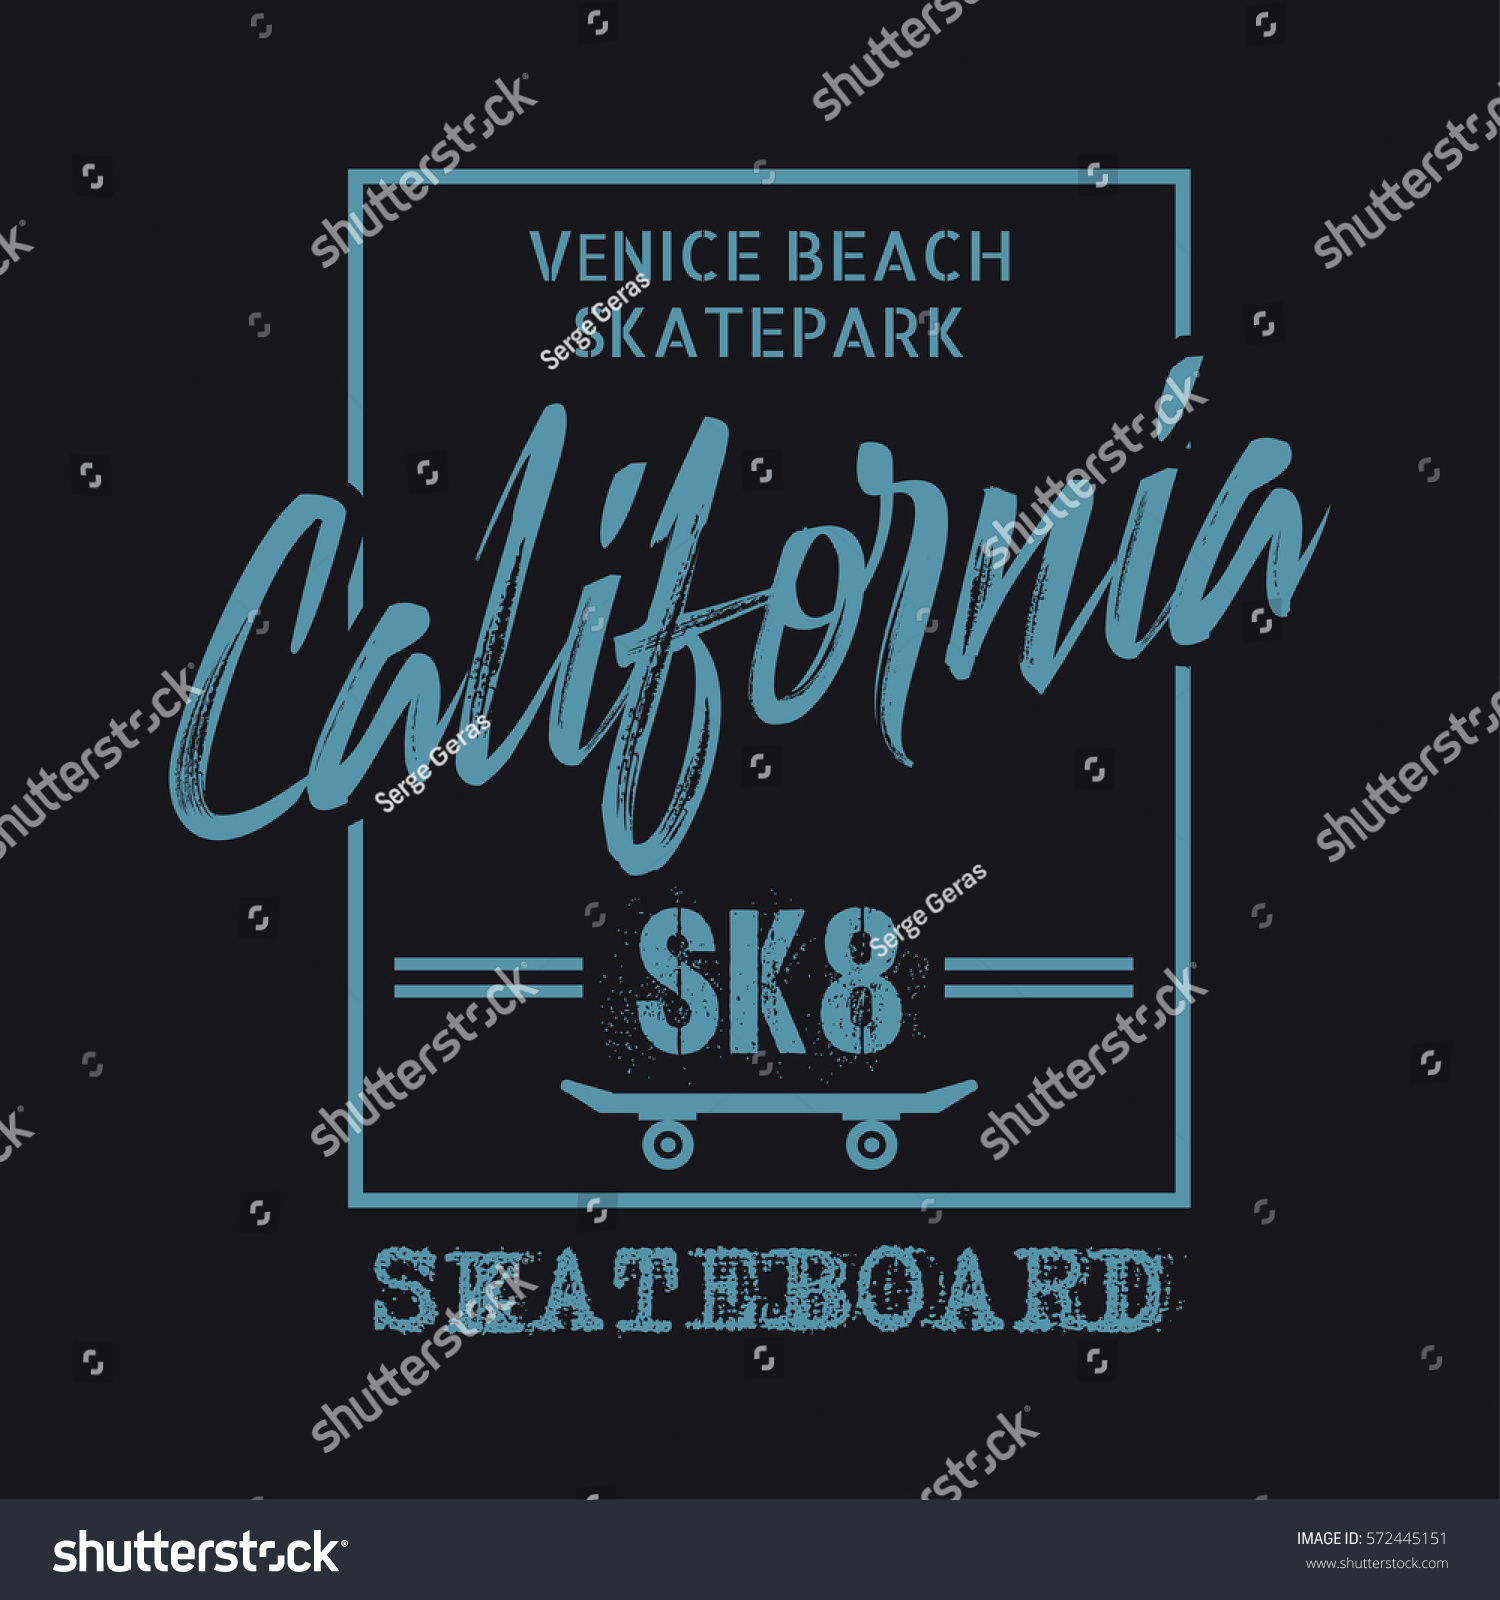 Vector Illustration On Theme Skateboarding Skateboard Vector de ...